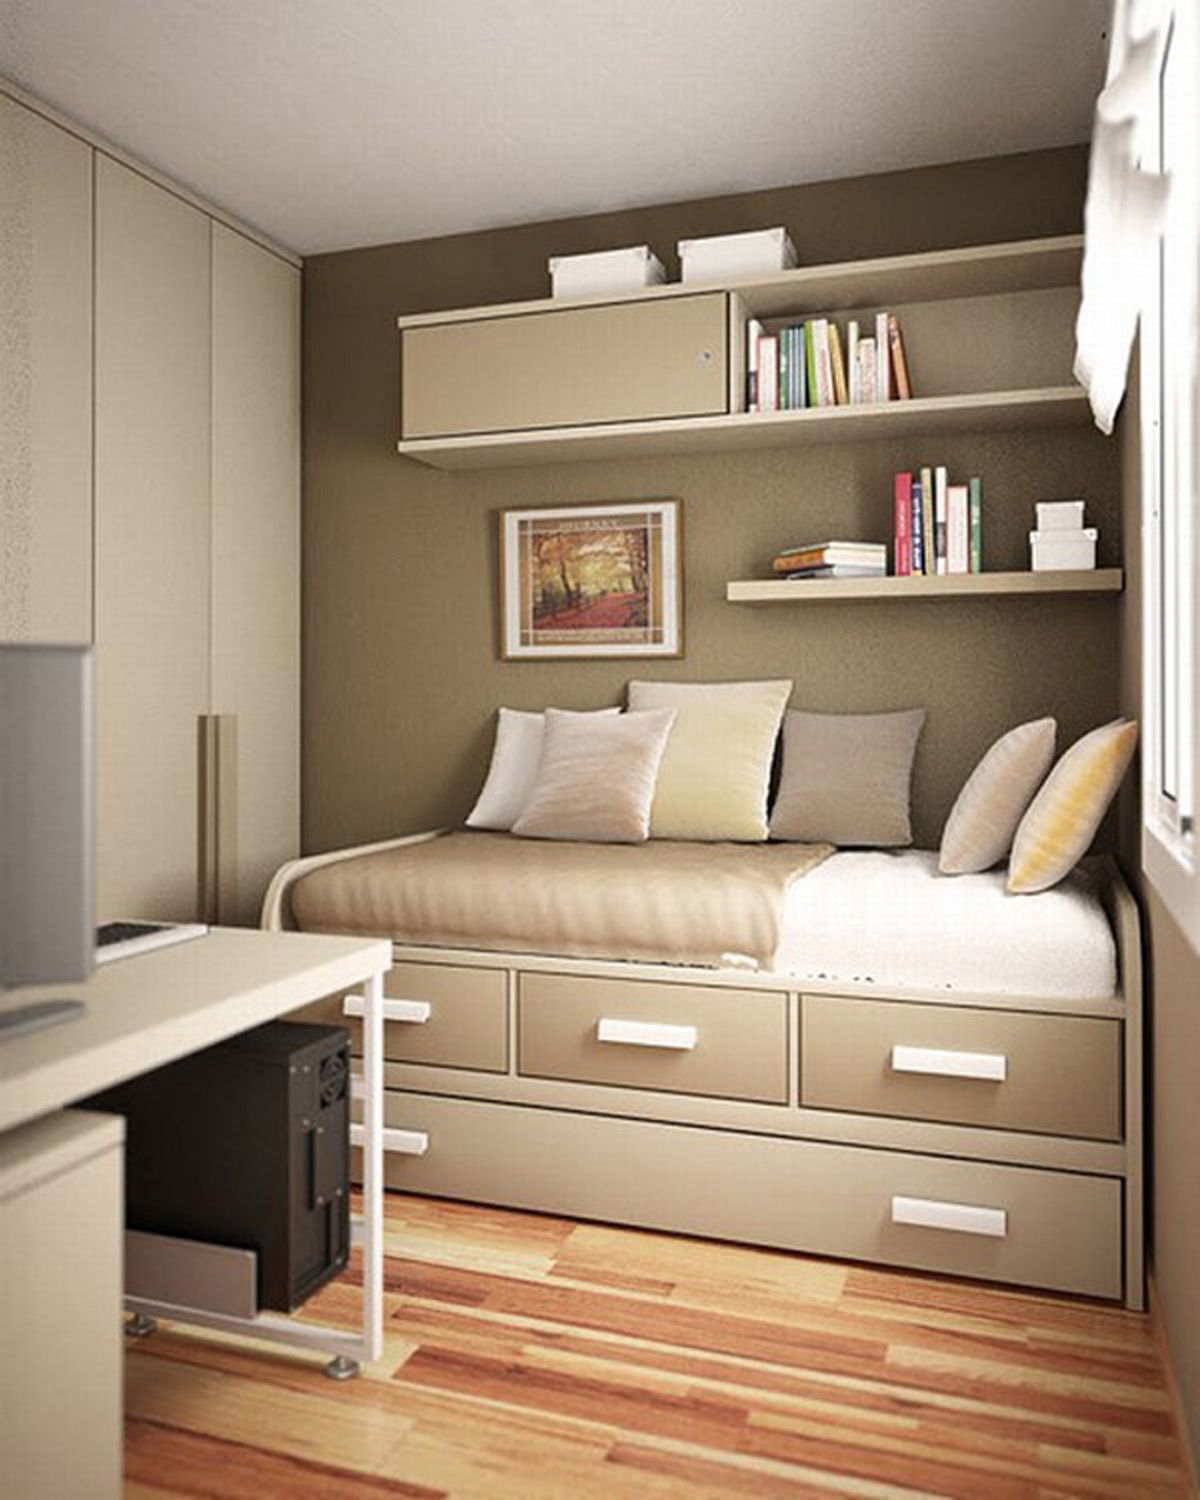 Very small bedroom solutions - Contemporary Small Bedroom Ideas